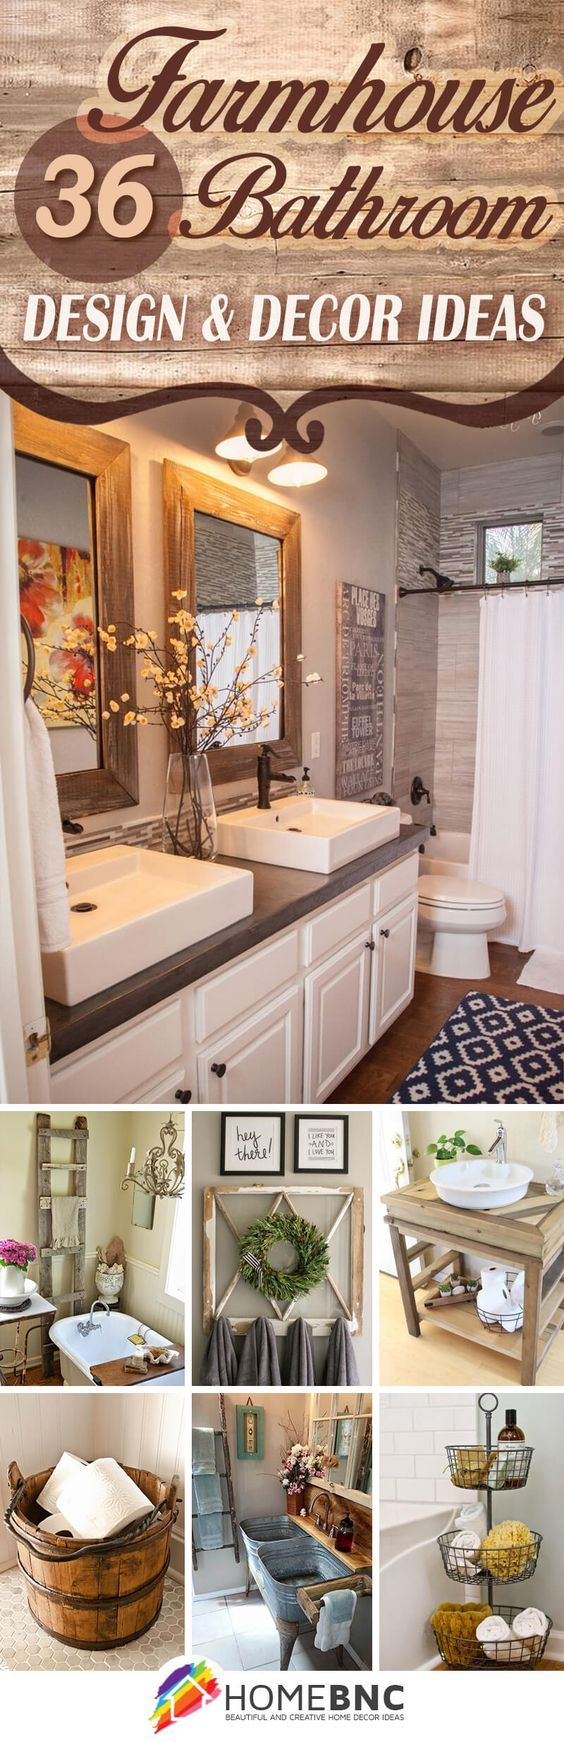 Bathroom designs for couples - 25 Best Ideas About Bathroom Remodeling On Pinterest Bath Remodel Guest Bathroom Remodel And Restroom Remodel